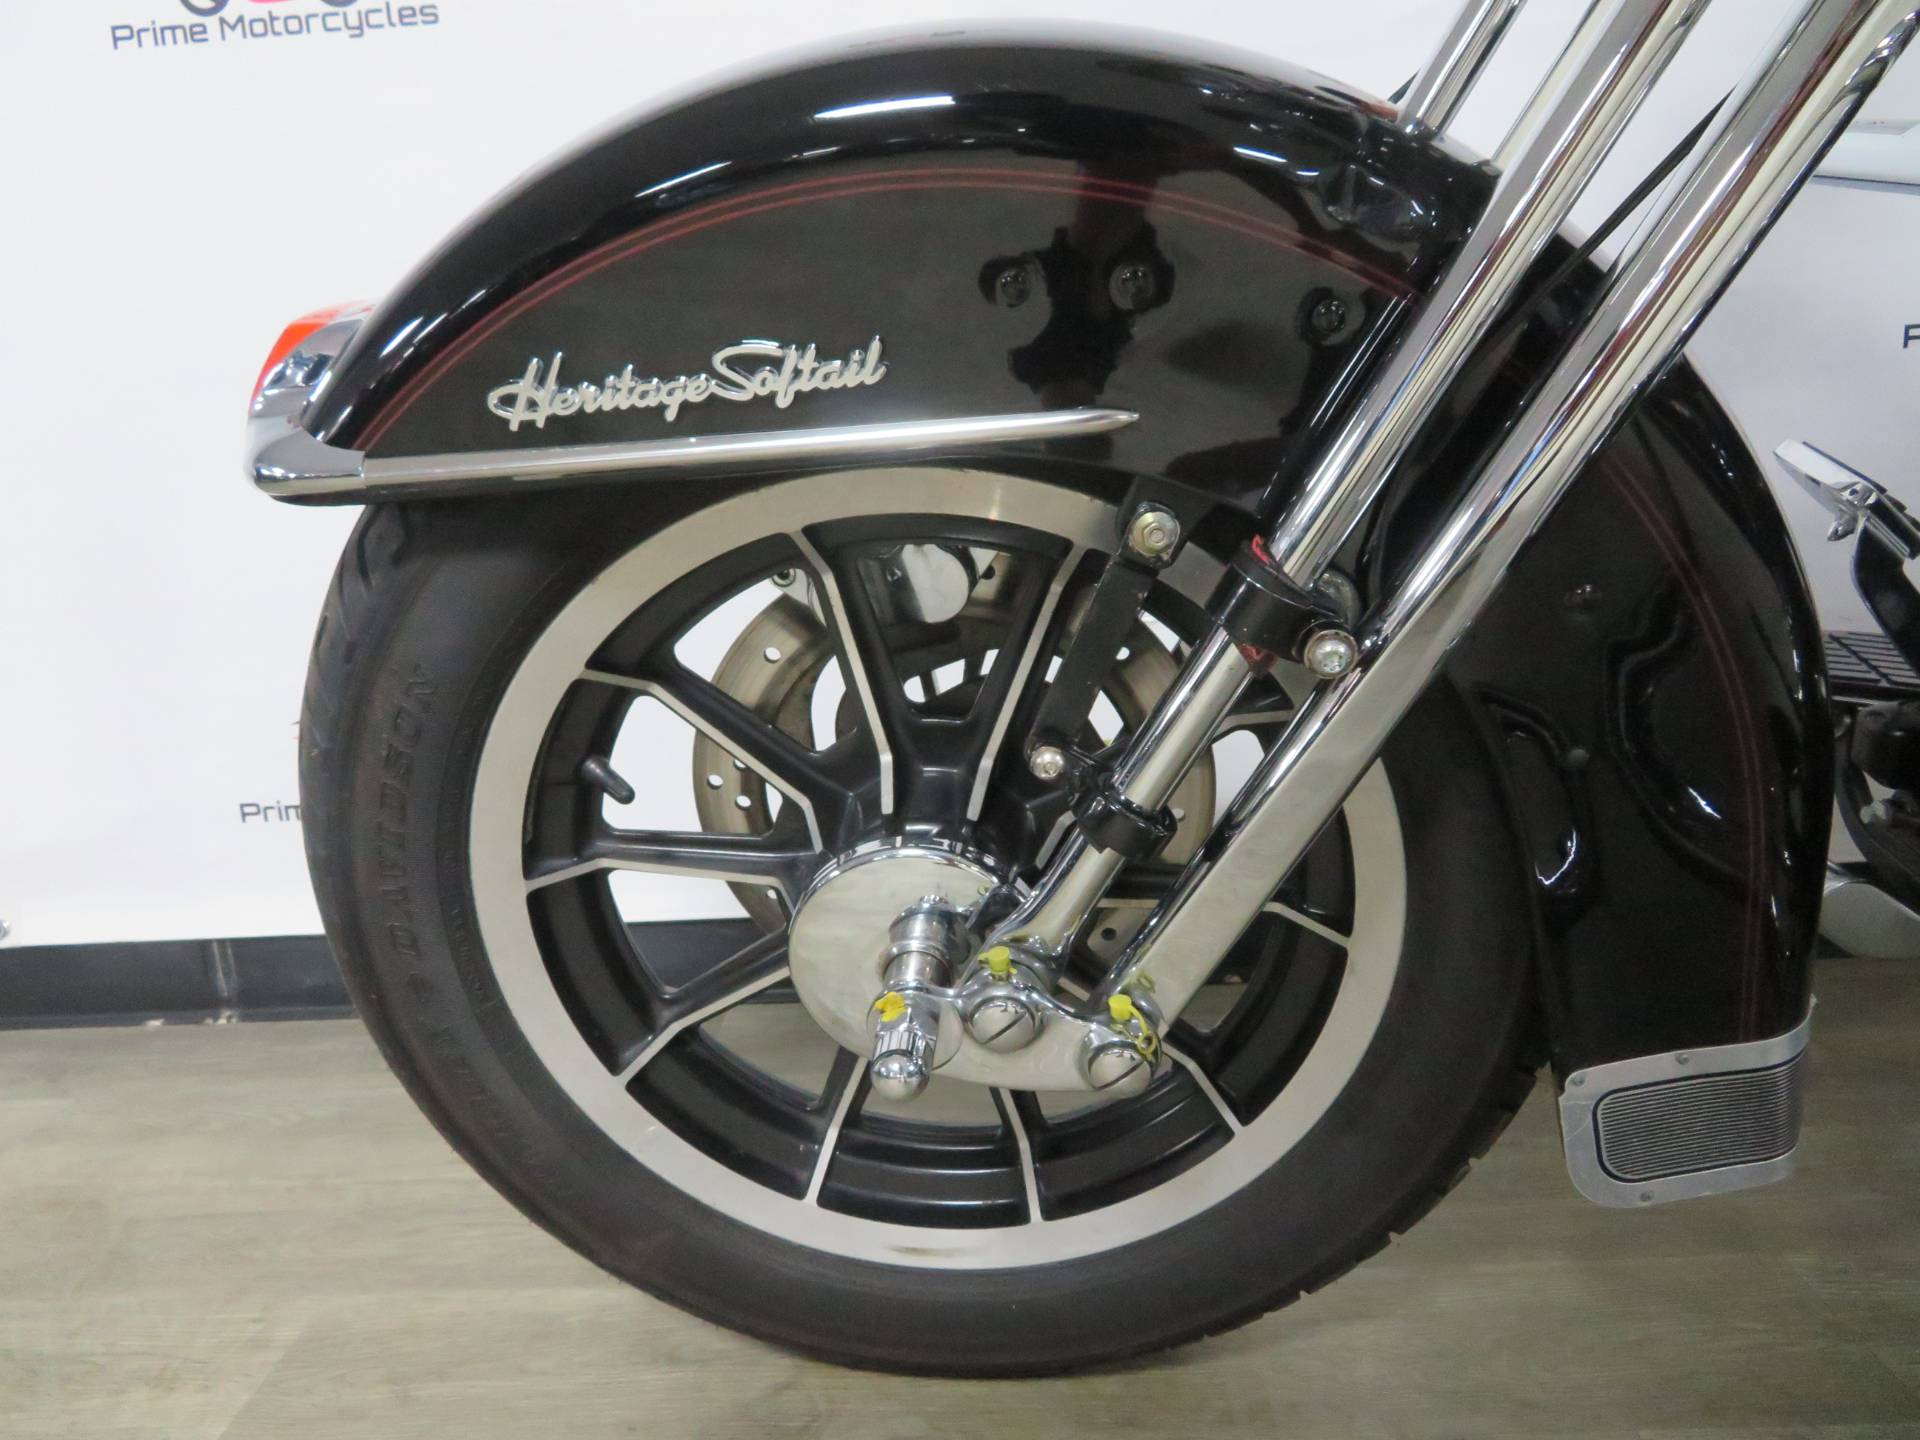 2002 Harley-Davidson FLSTC/FLSTCI Heritage Softail® Classic in Sanford, Florida - Photo 14